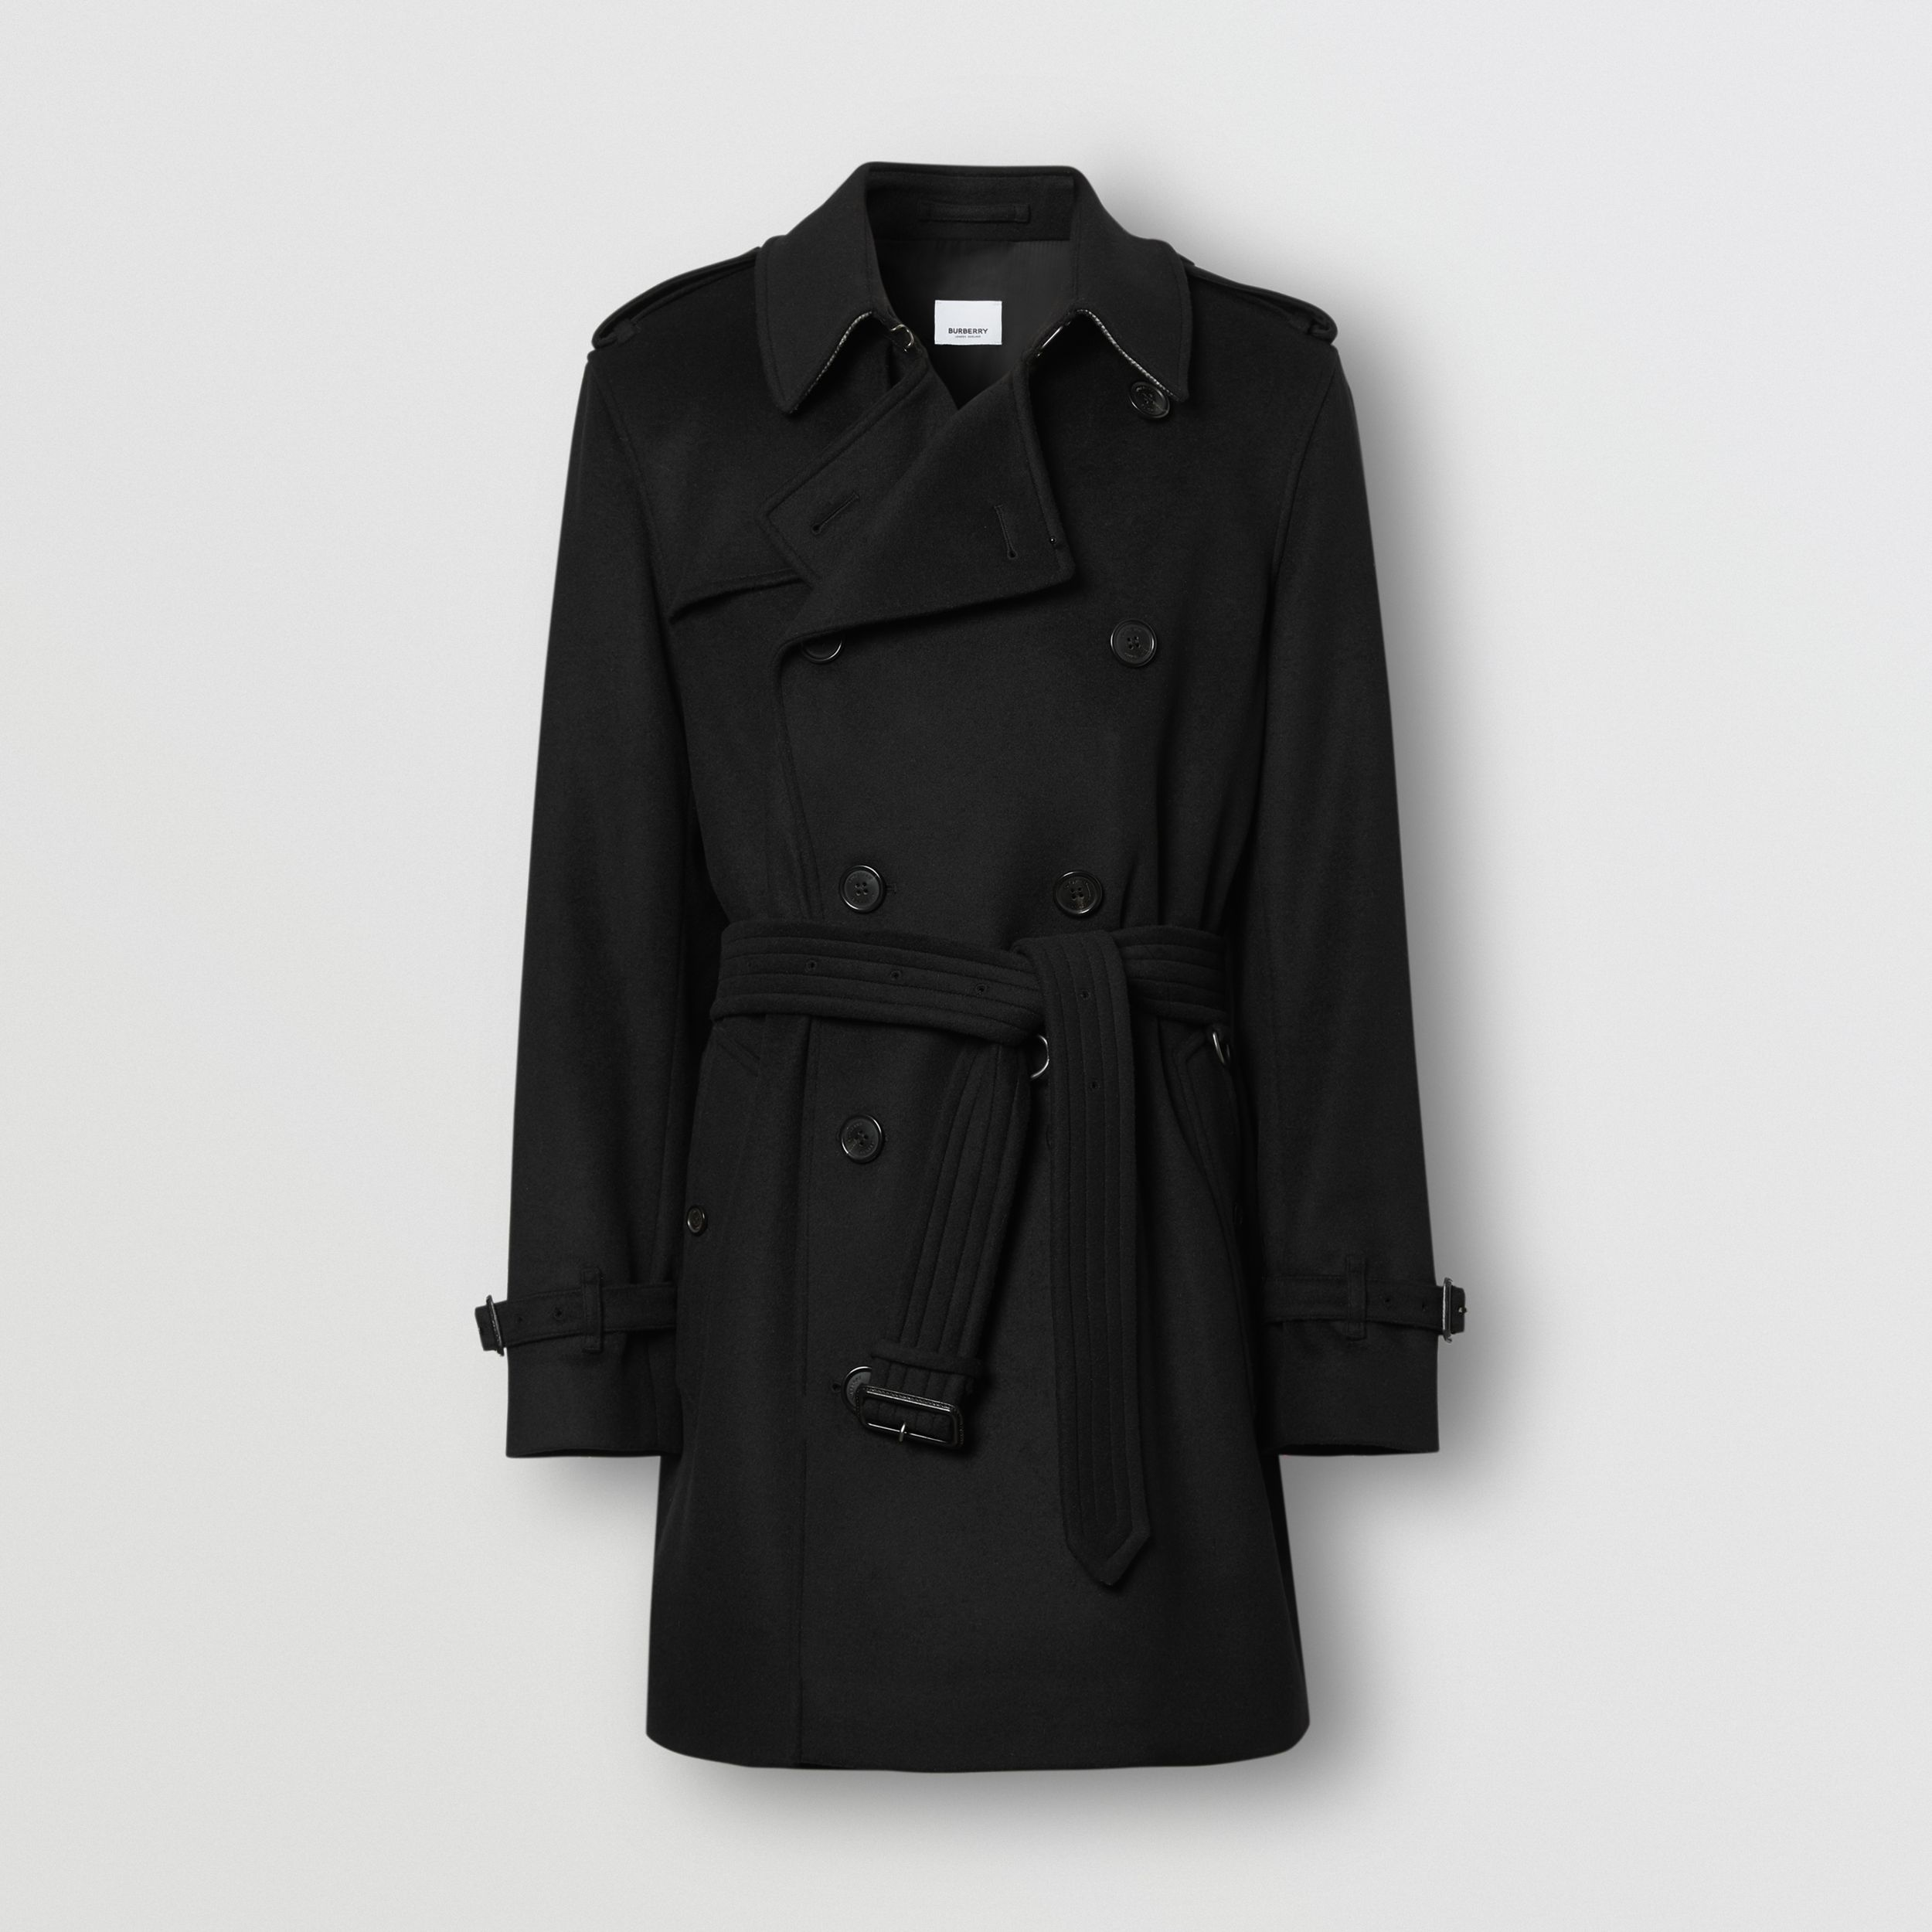 Wool Cashmere Trench Coat in Black - Men | Burberry - 4